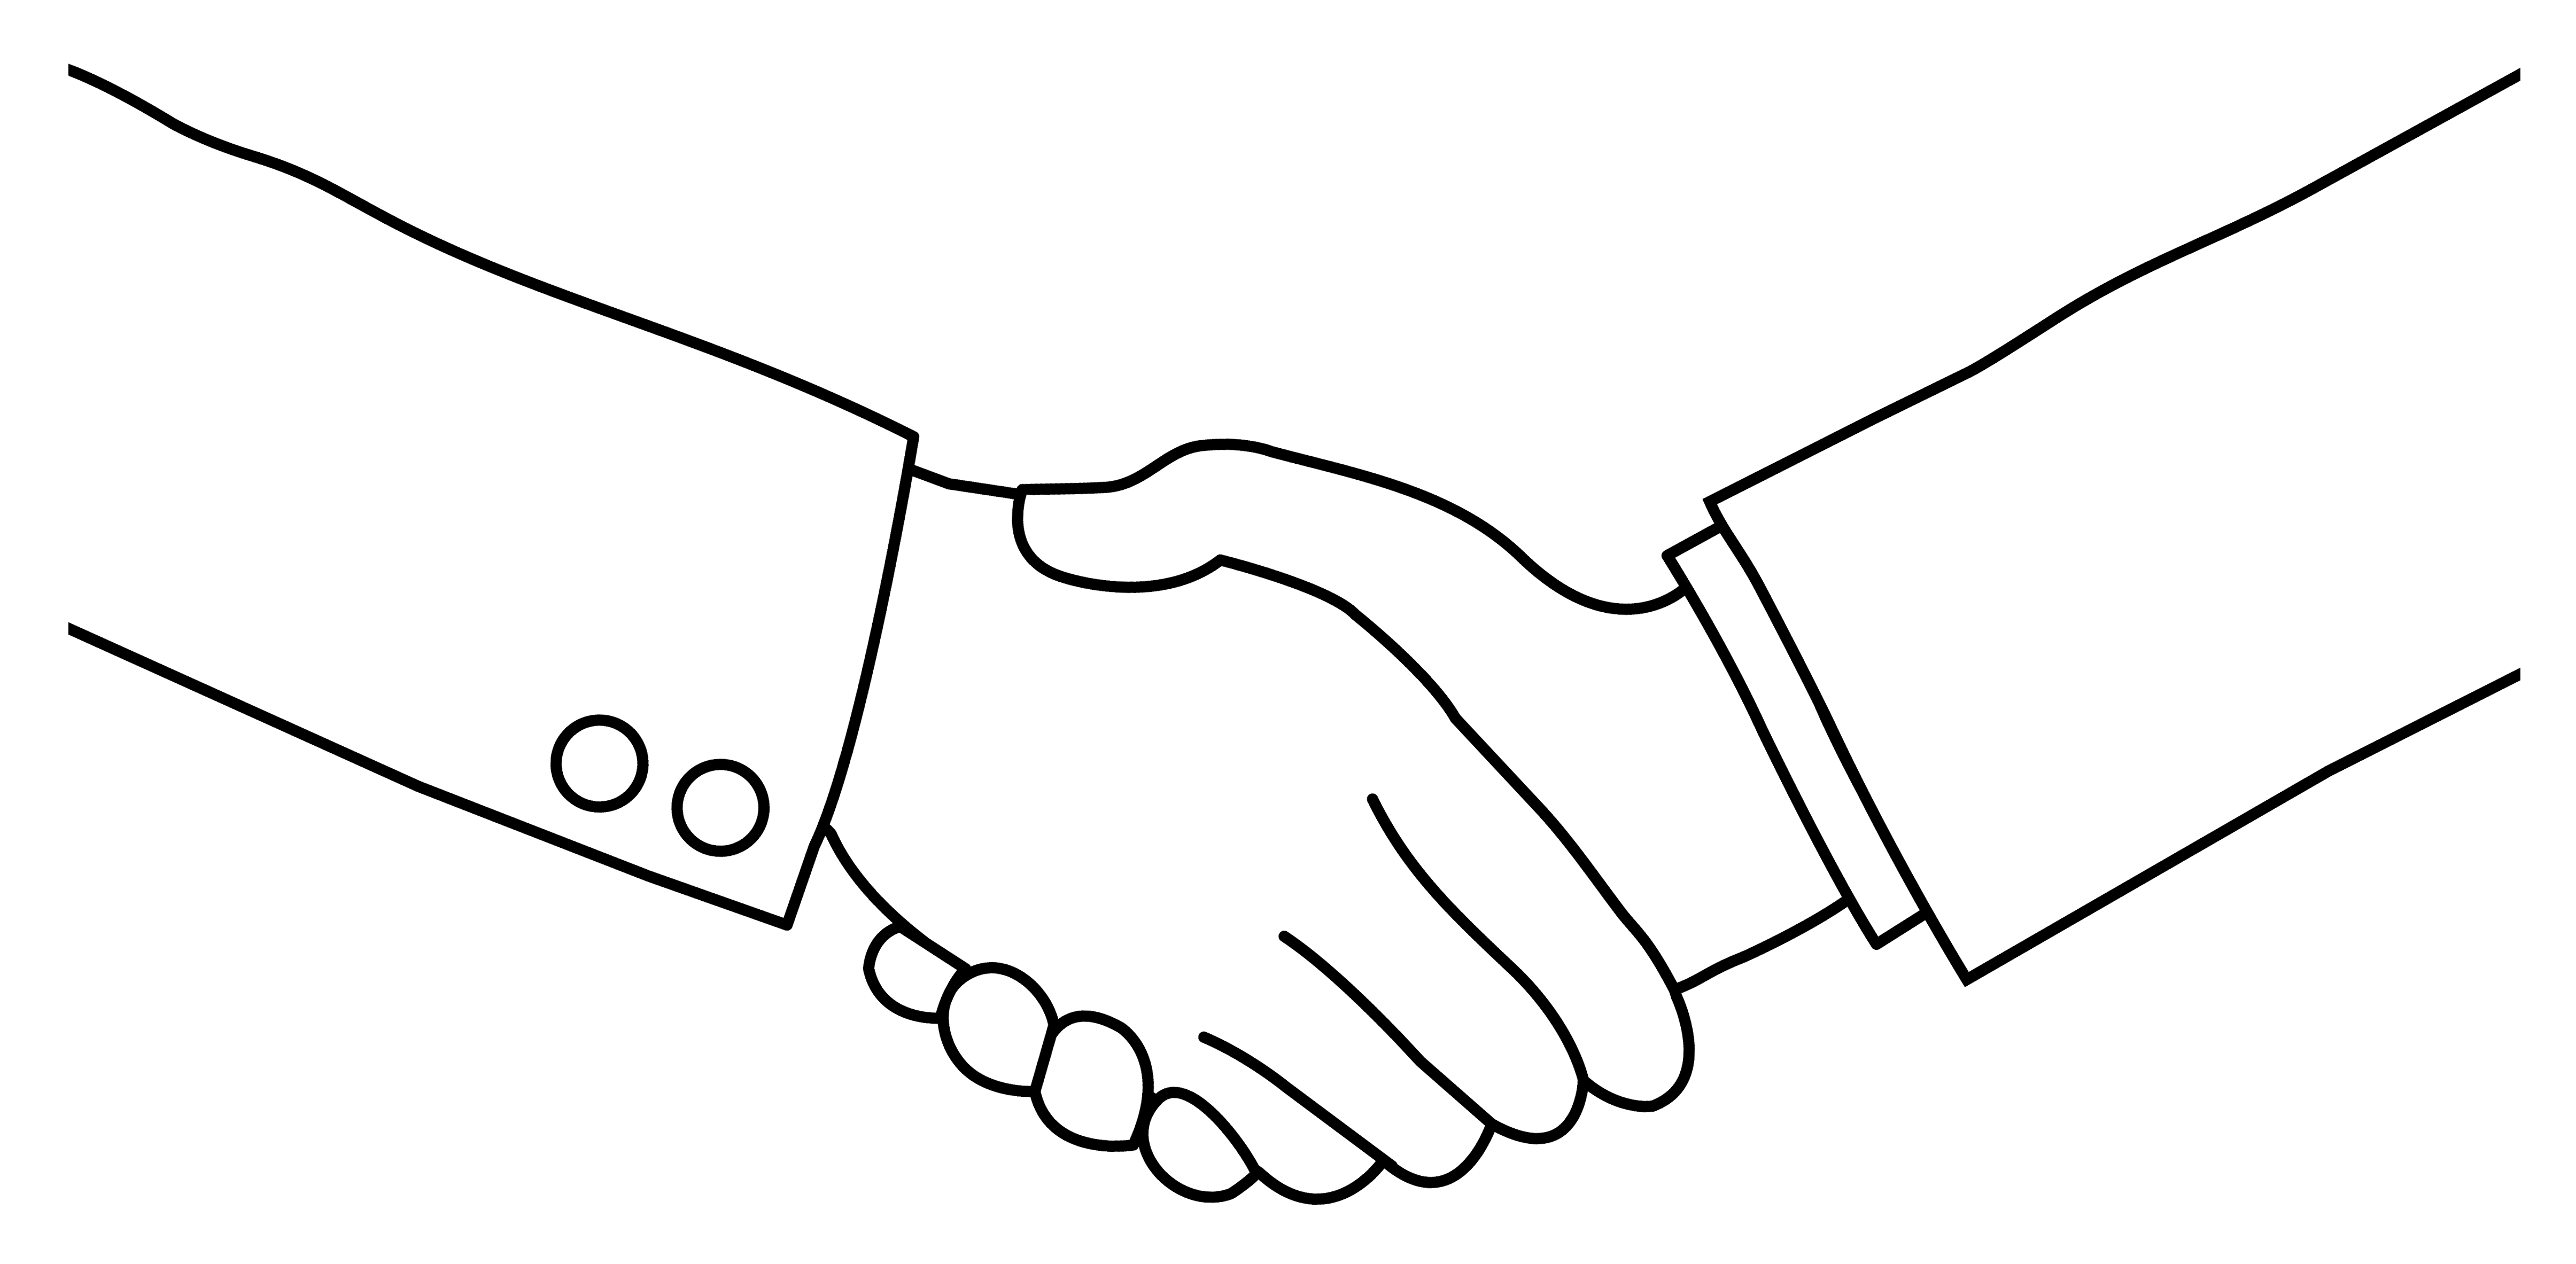 Handshake hand shake clip art at vector clipartbarn